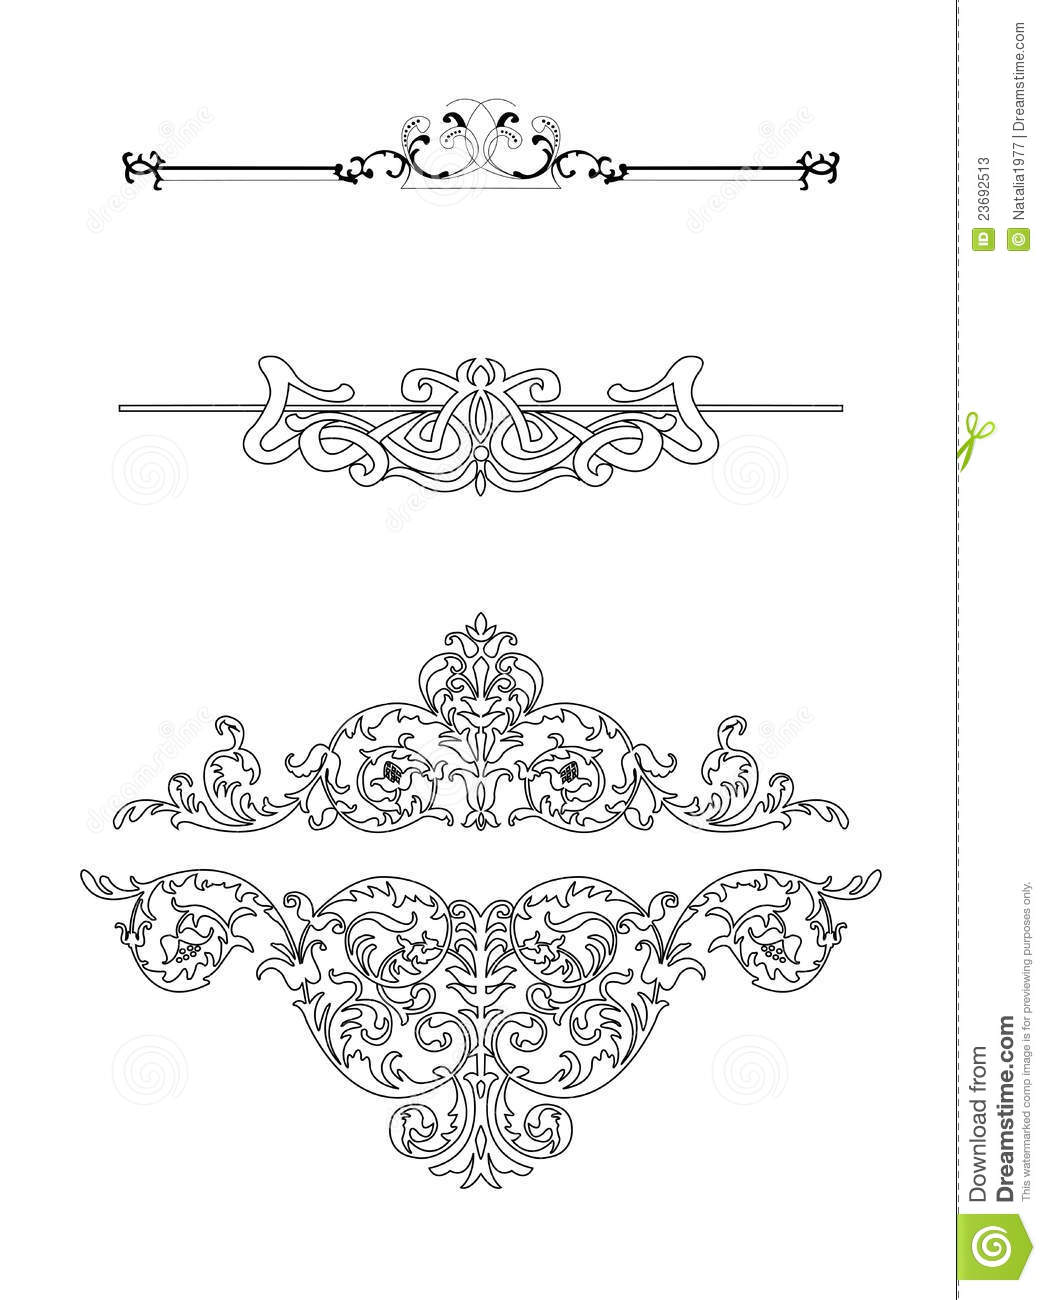 14 Vintage Line Vector Images - Vintage Vector Ornaments ...